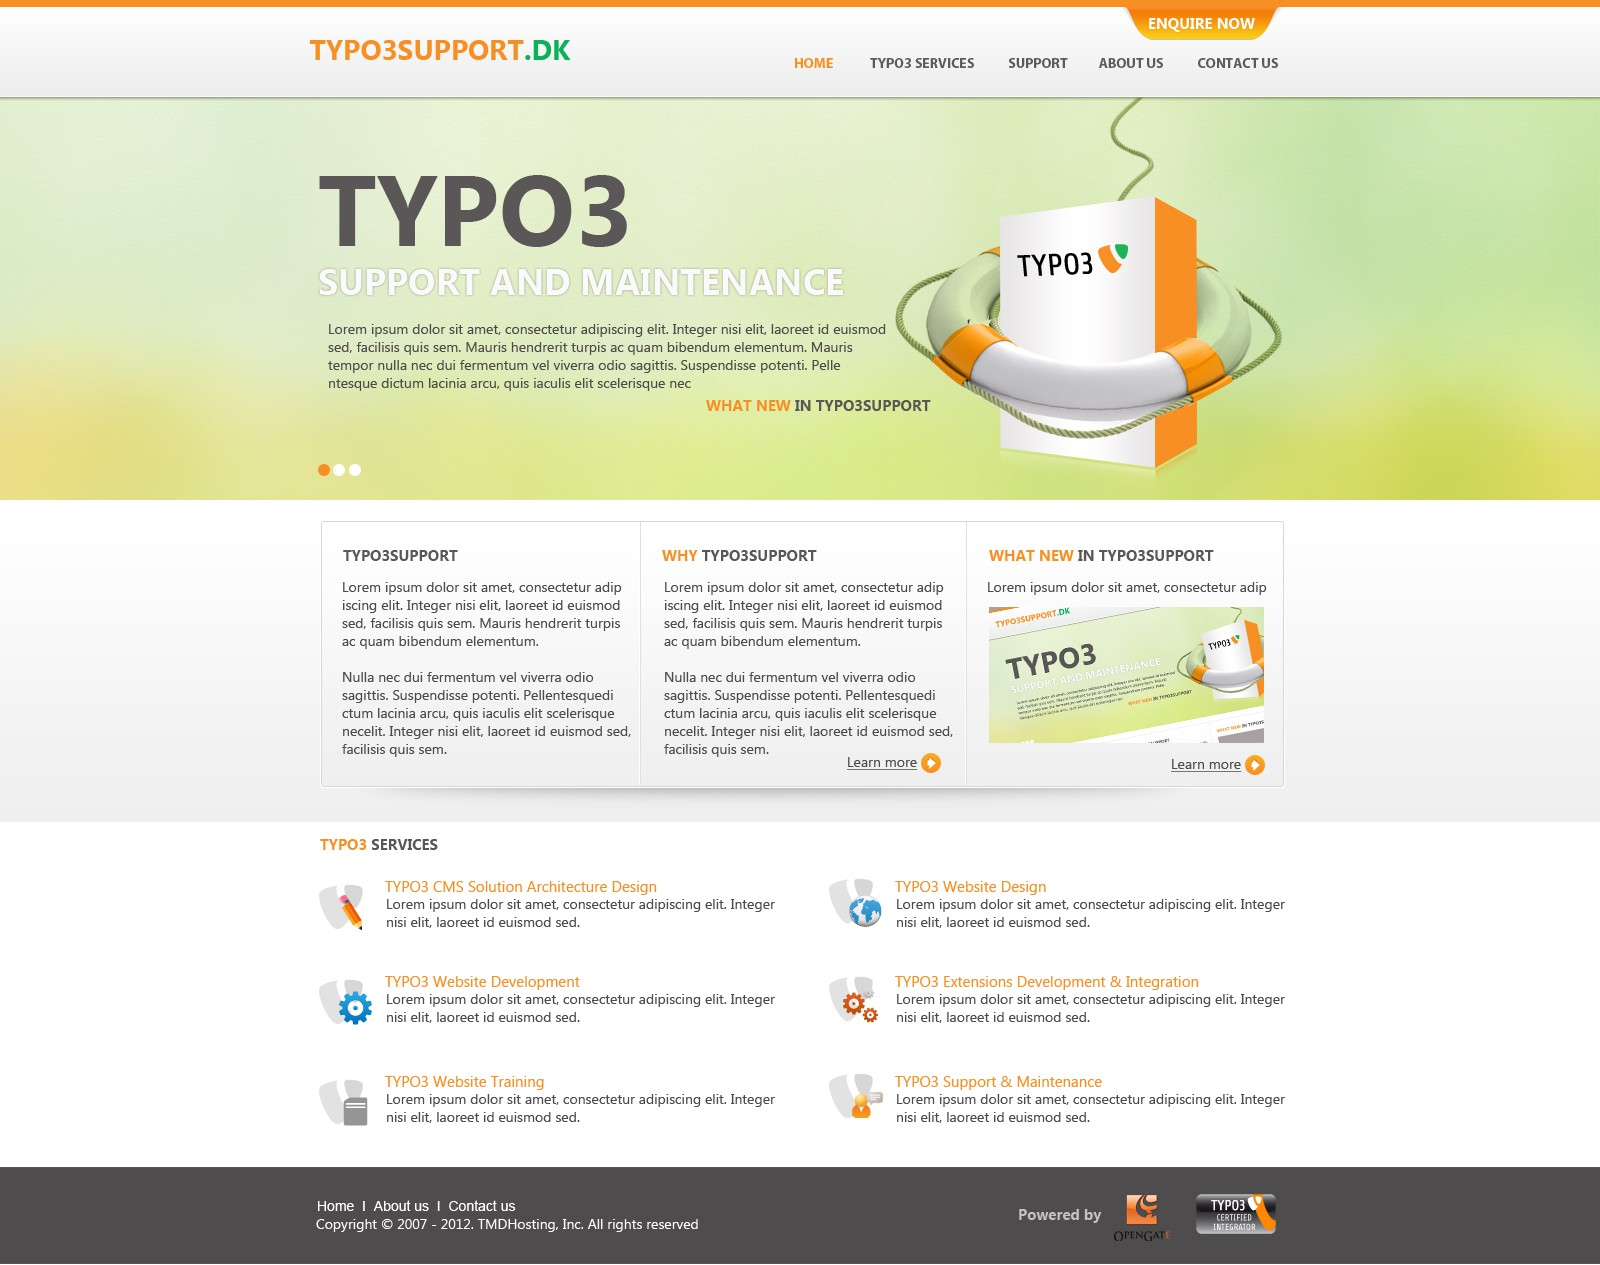 Create the next website design for Typo3support.dk